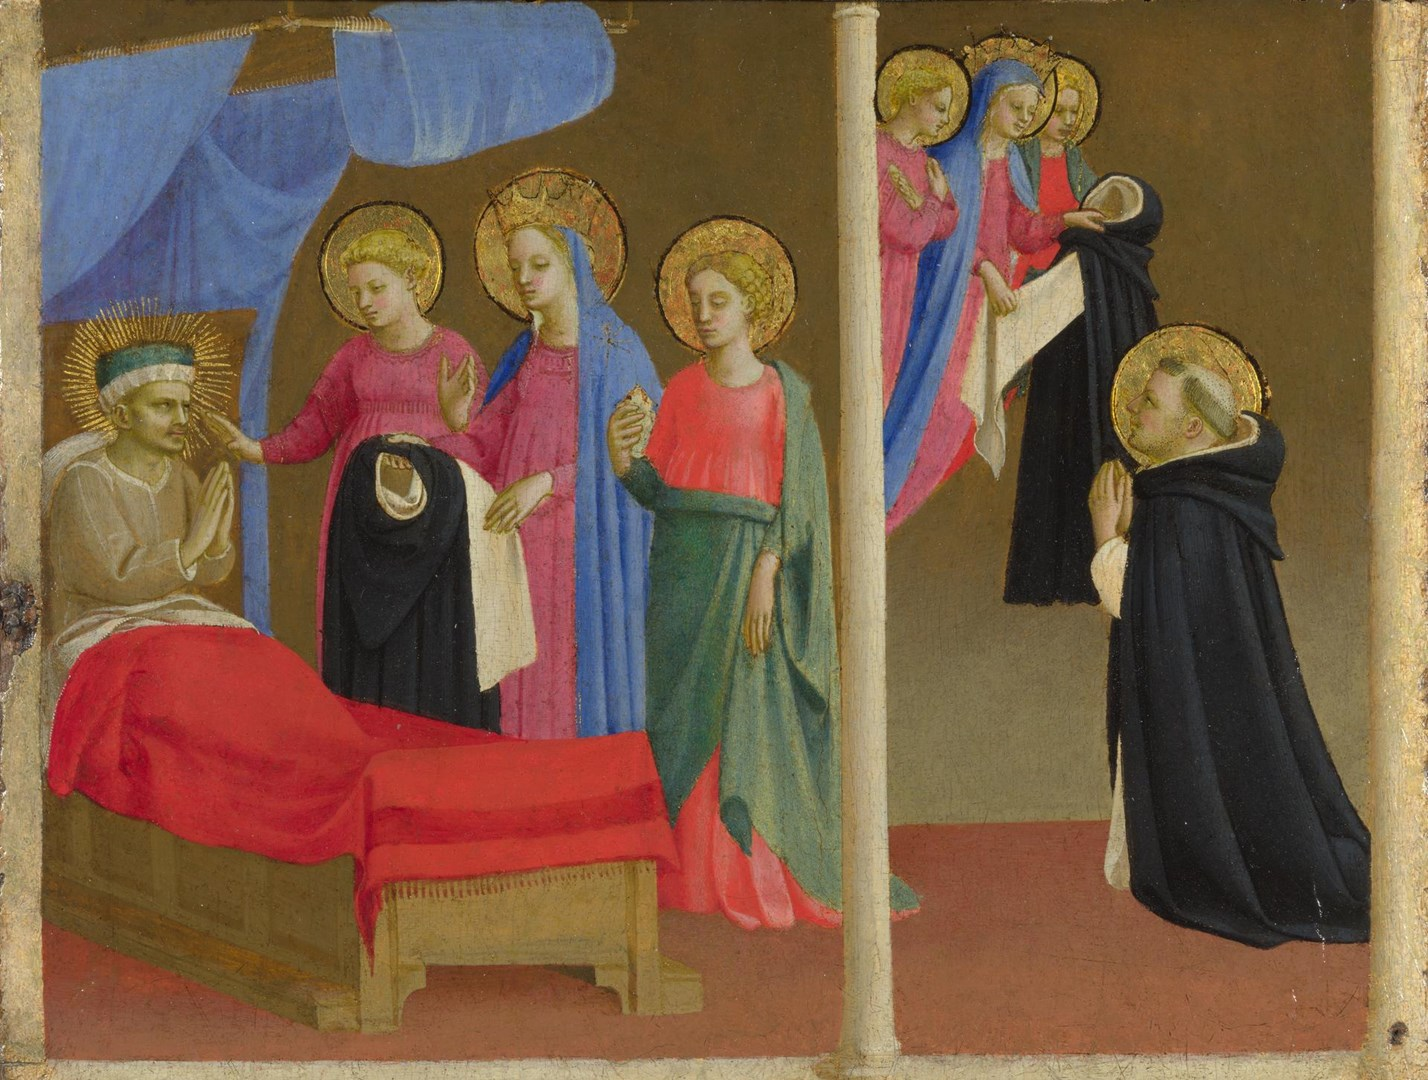 The Vision of the Dominican Habit by Workshop of Fra Angelico